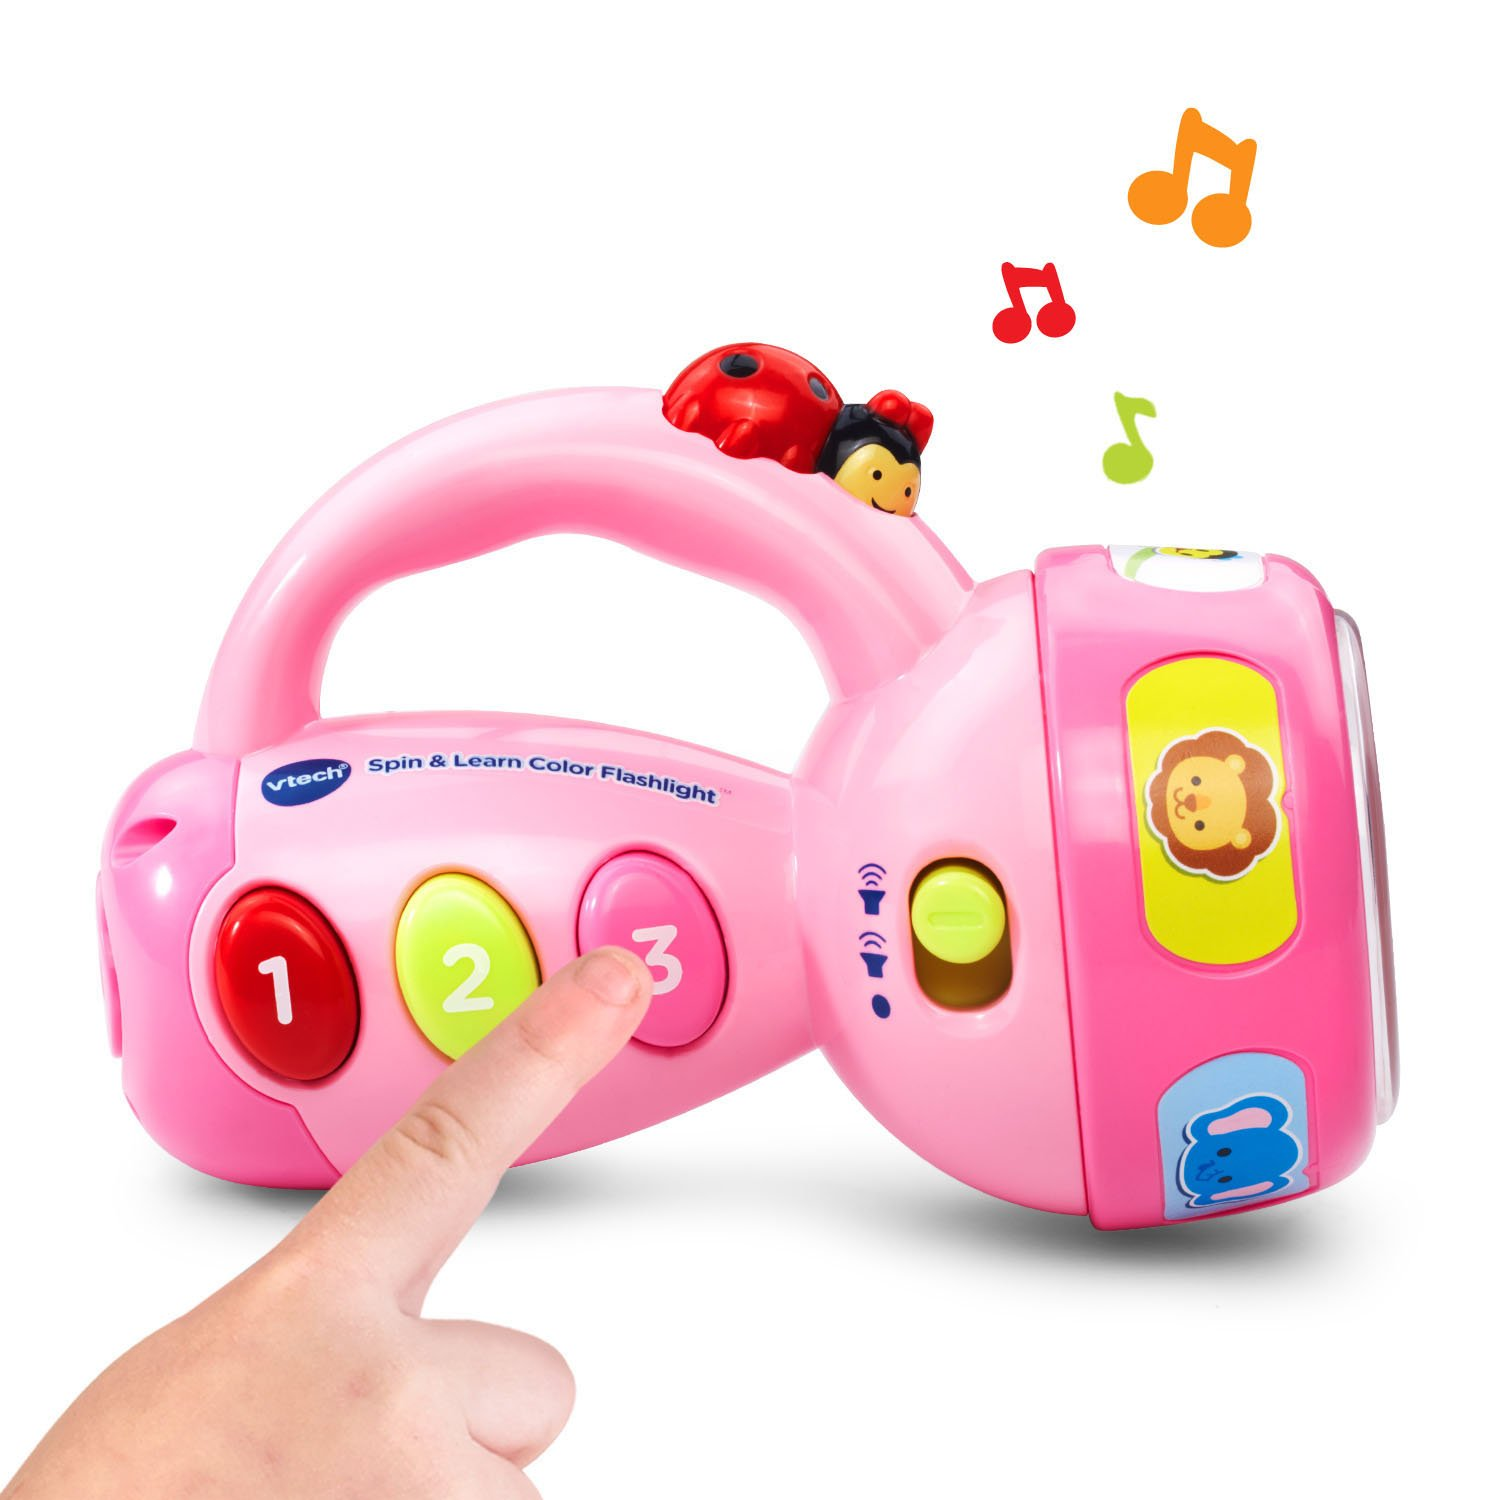 Amazon VTech Spin and Learn Color Flashlight Pink line